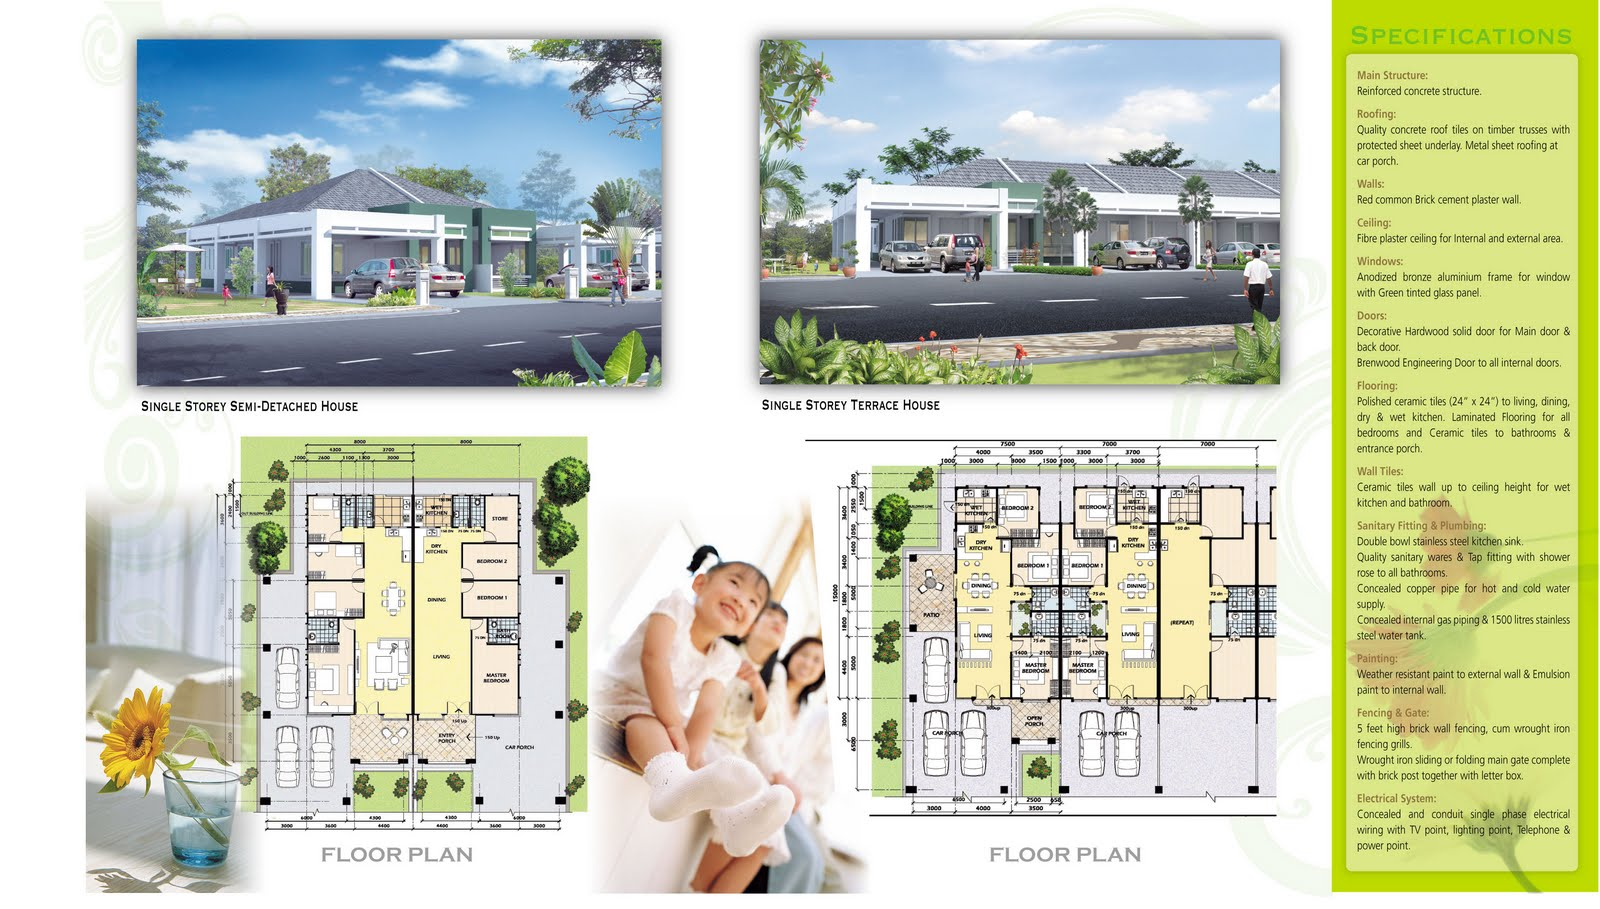 House Plans Semi Detached Flats - Donkiz Real Estate